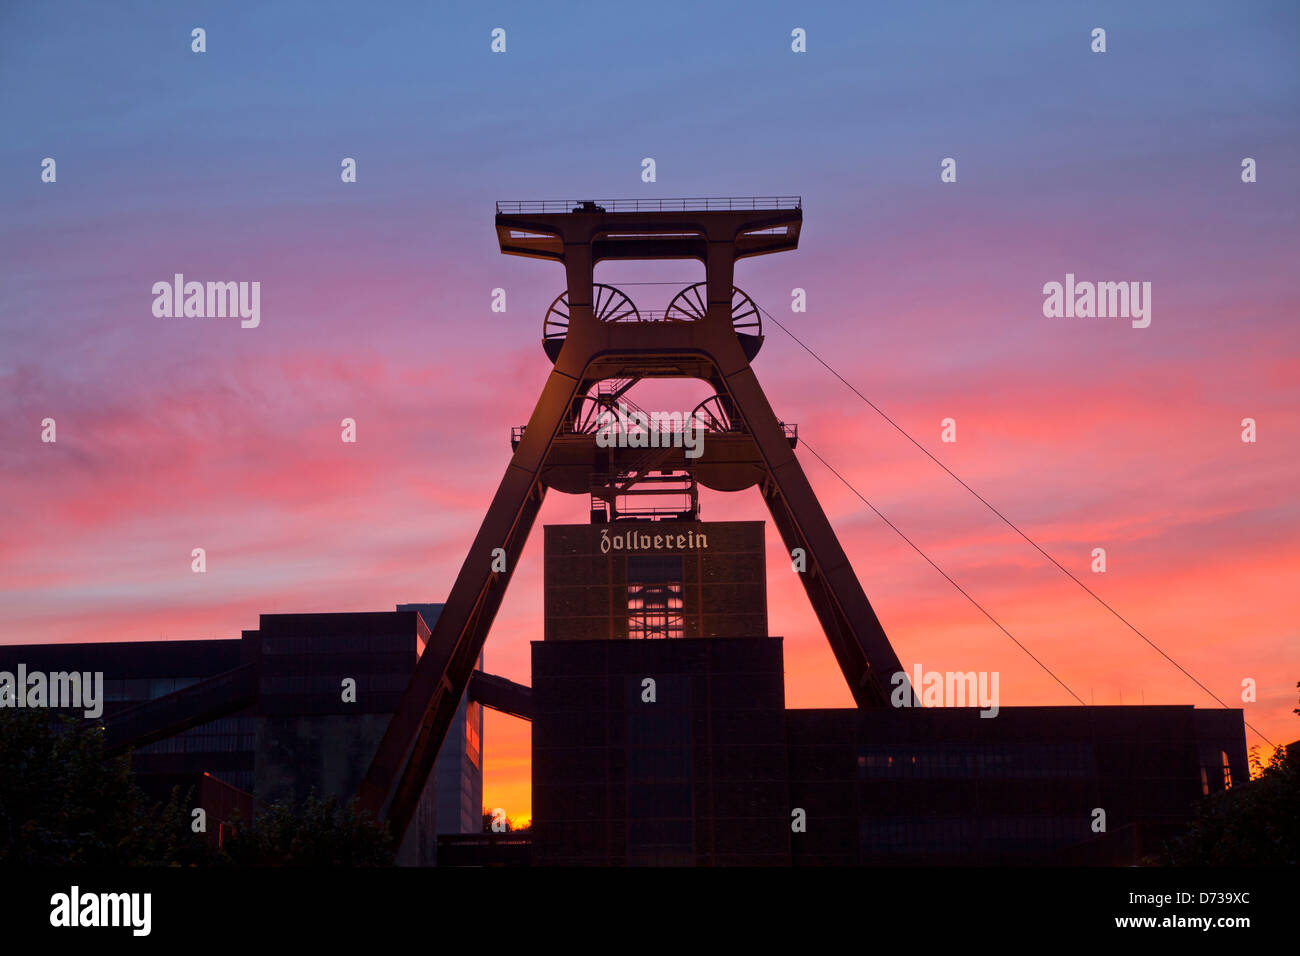 colourful sunset at the winding tower of shaft 12 at Zollverein Coal Mine Industrial Complex in Essen, North Rhine - Stock Image